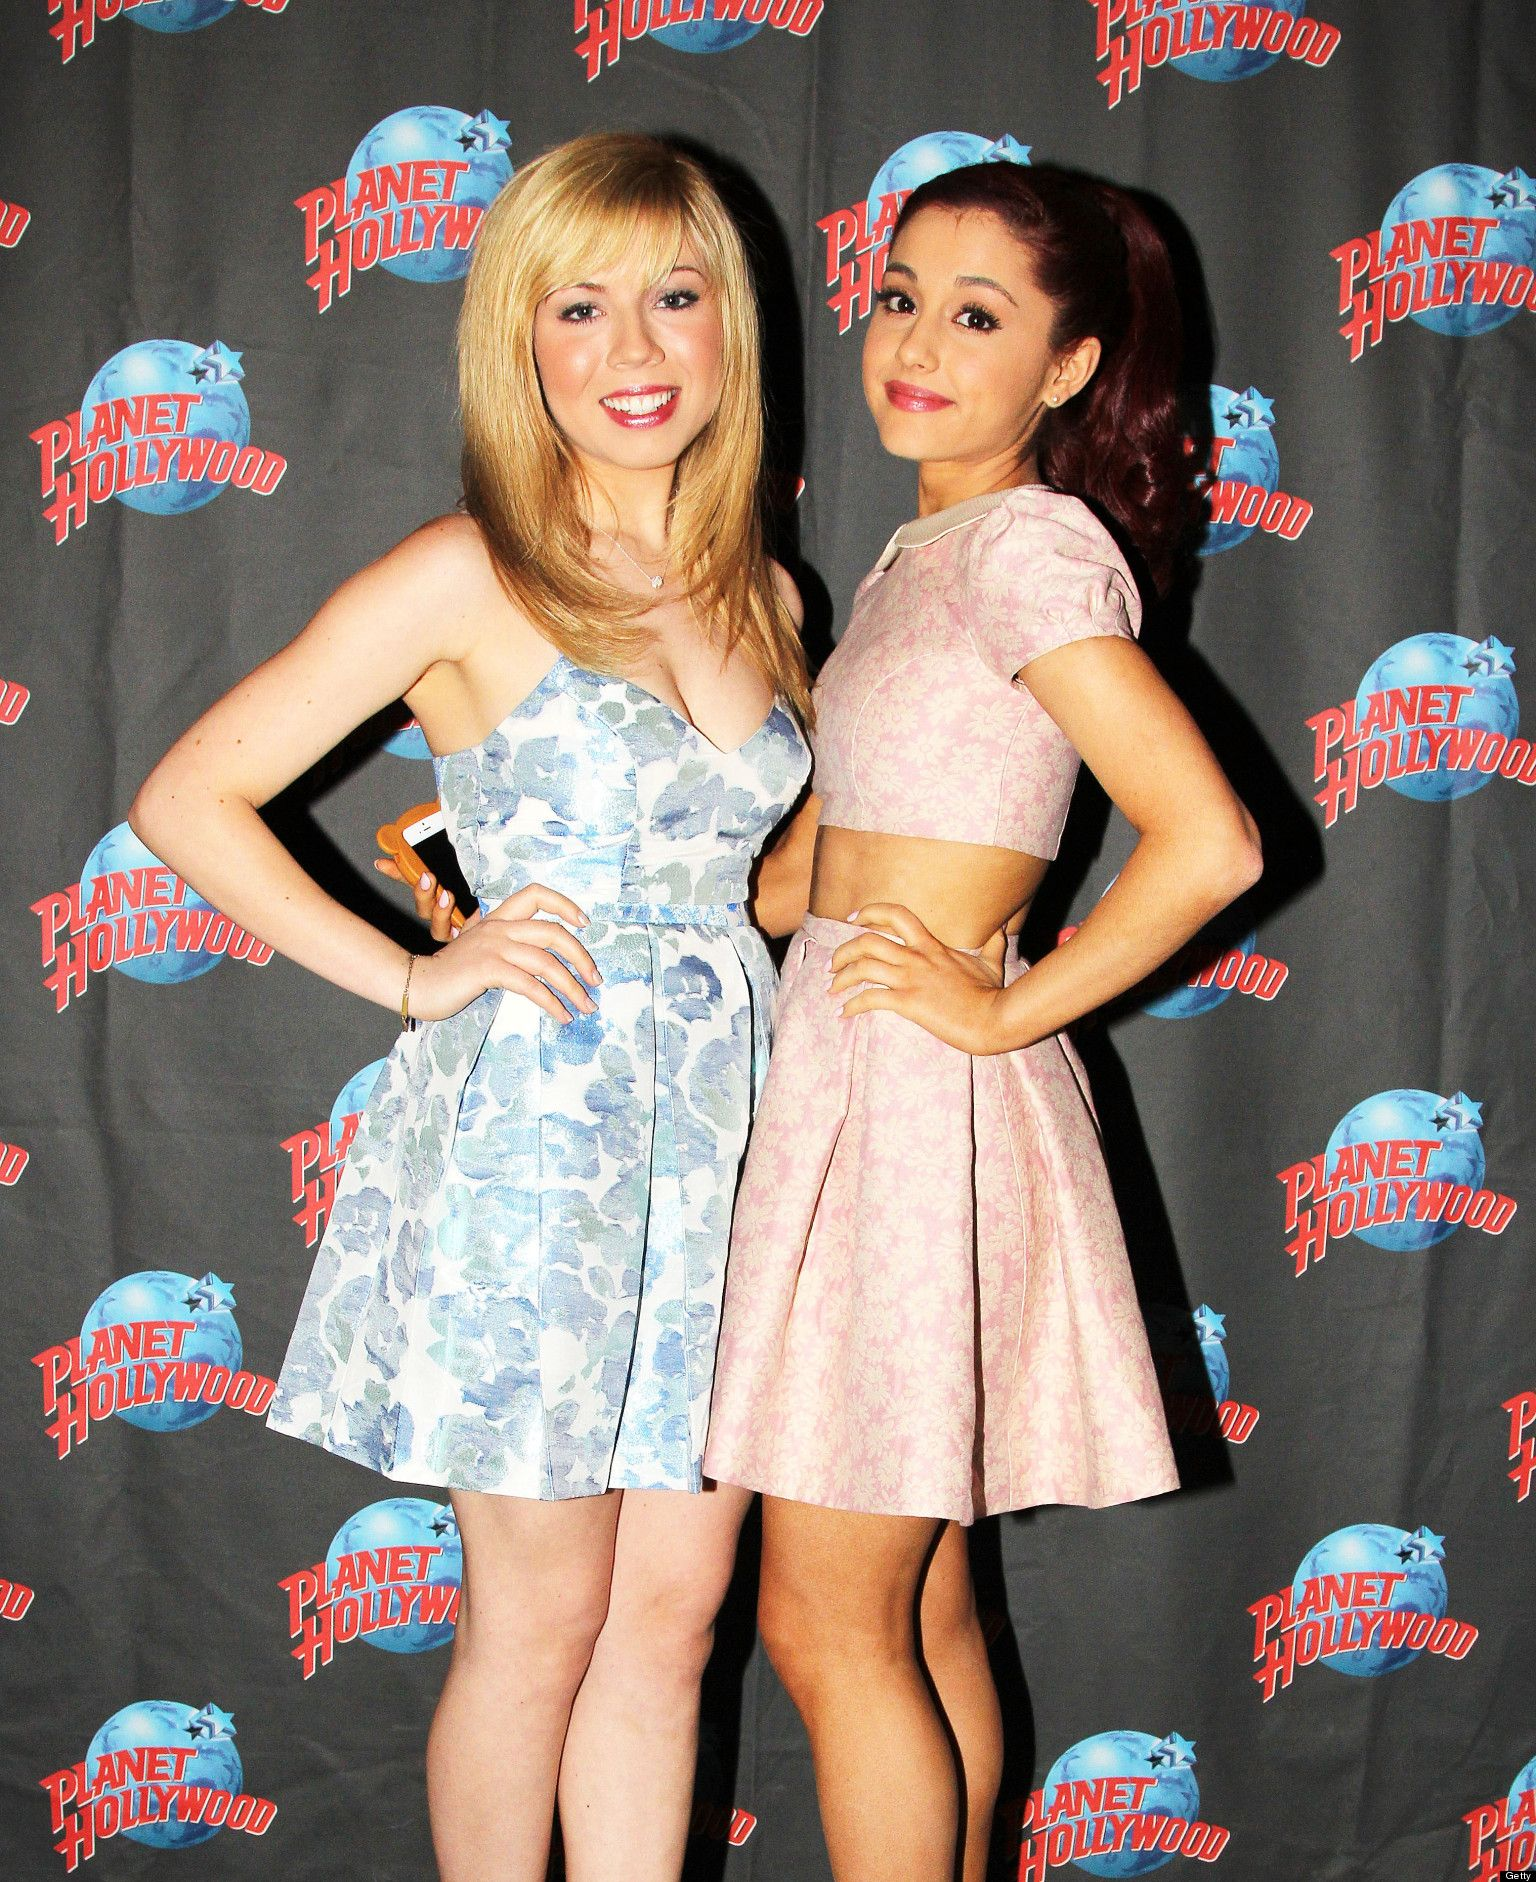 Grande mccurdy nackt jennette ariana 41 Sexiest